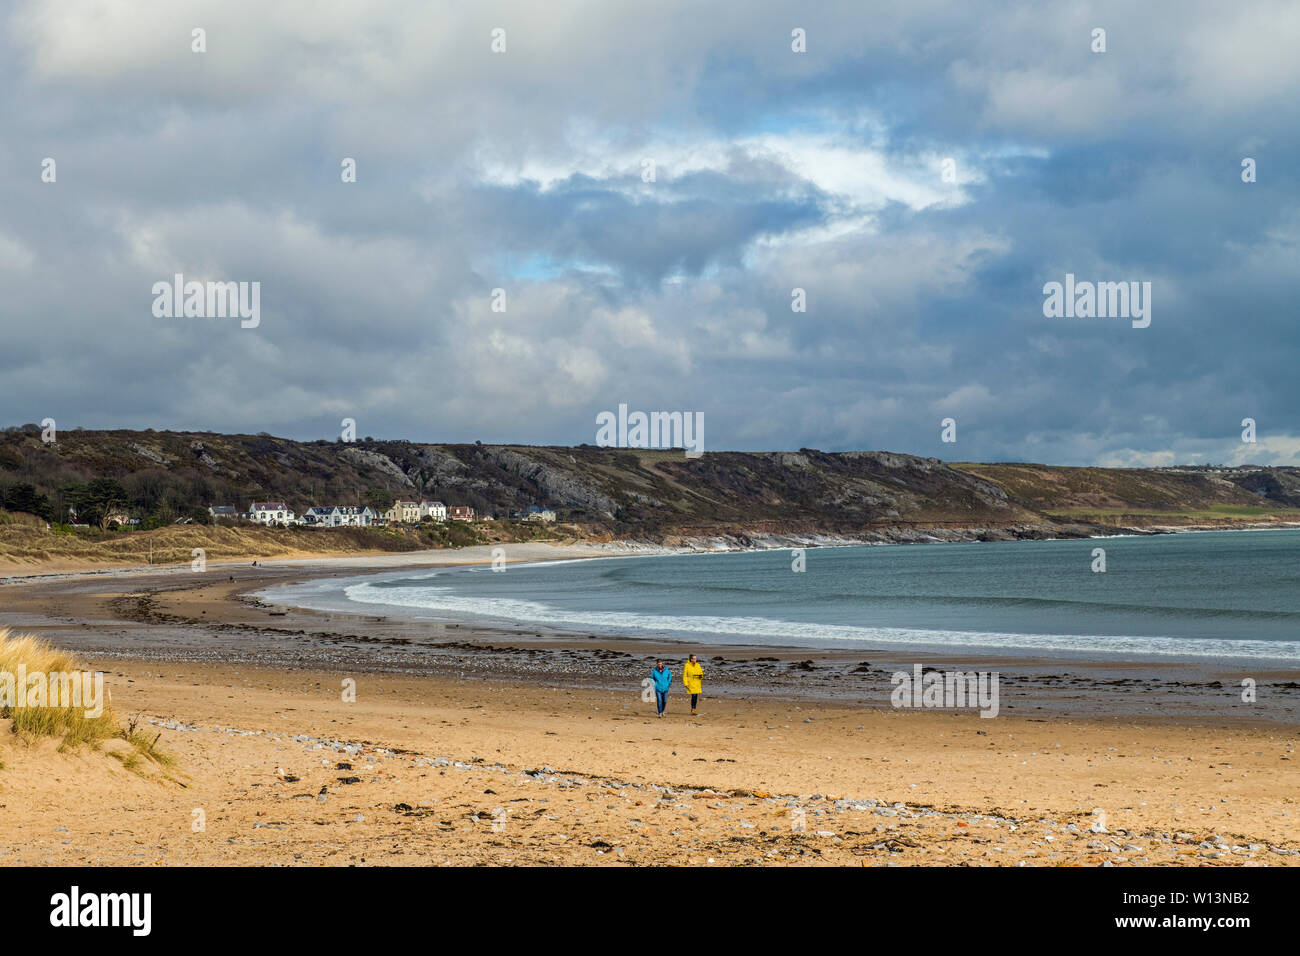 Port Eynon and Horton beaches on the Gower Peninsula AONB, South Wales on a March afternoon - Stock Image